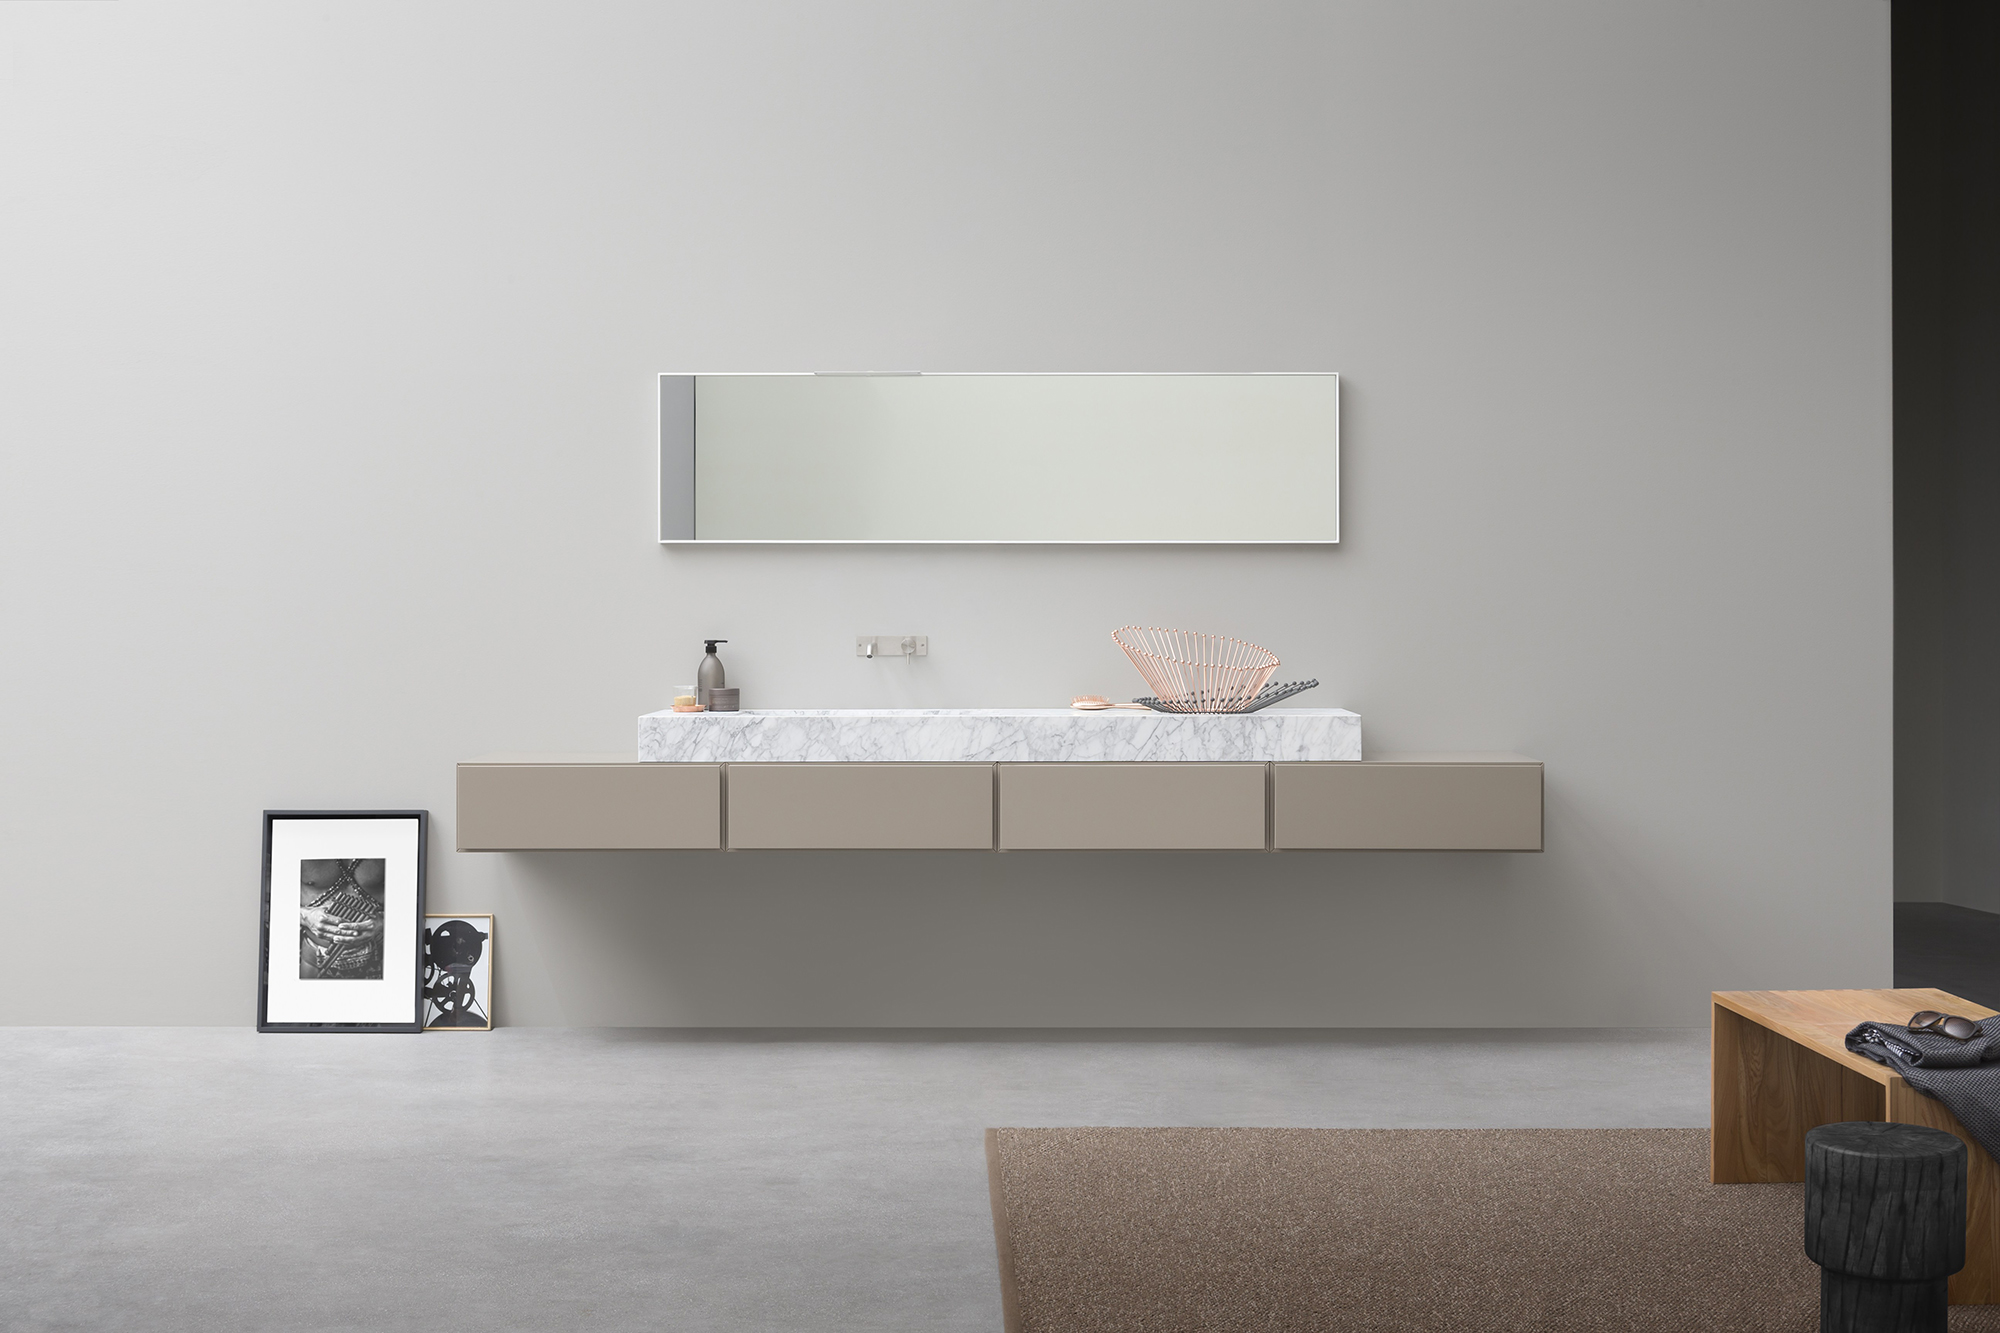 Arredo bagno e contemporary design rexa perugia bazzurri for Arredo e design